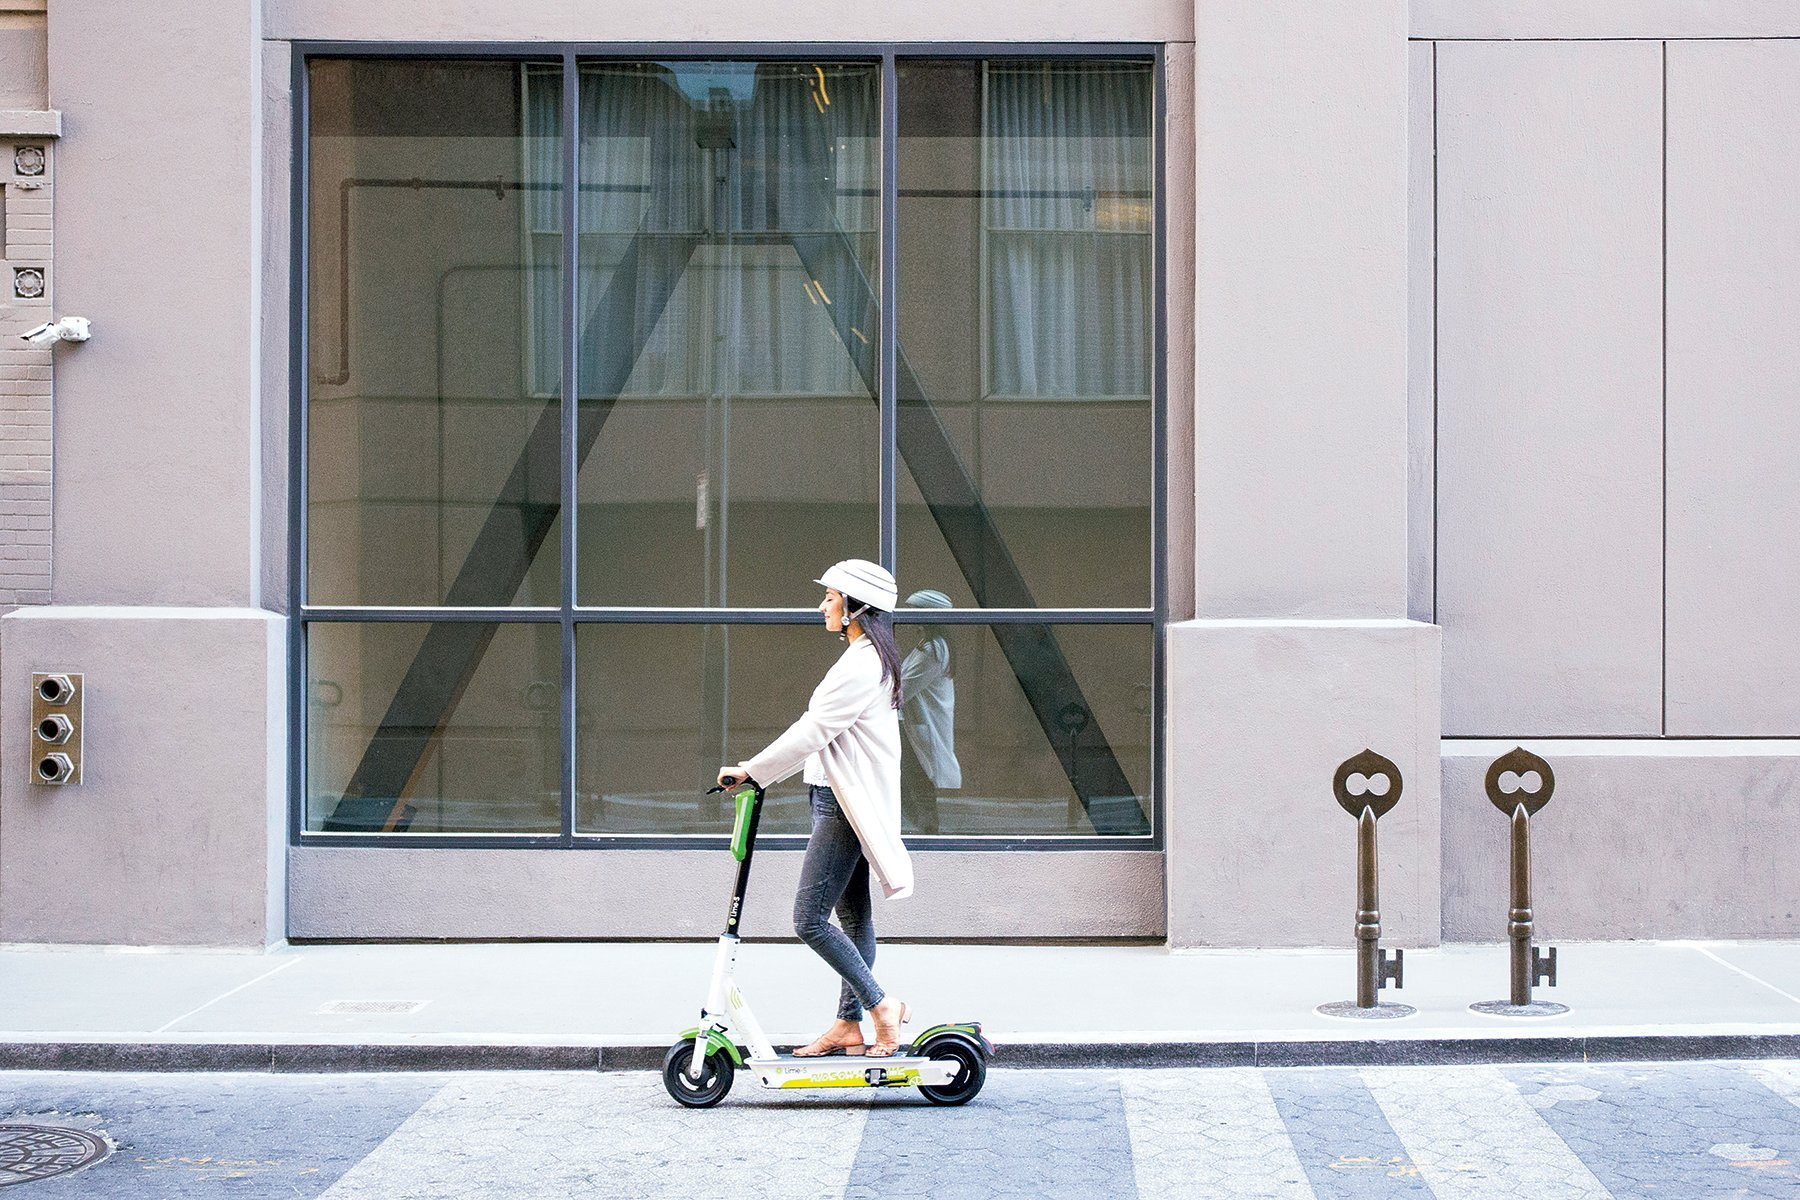 Everyday Advice: How to Ride a Scooter Without Killing Yourself